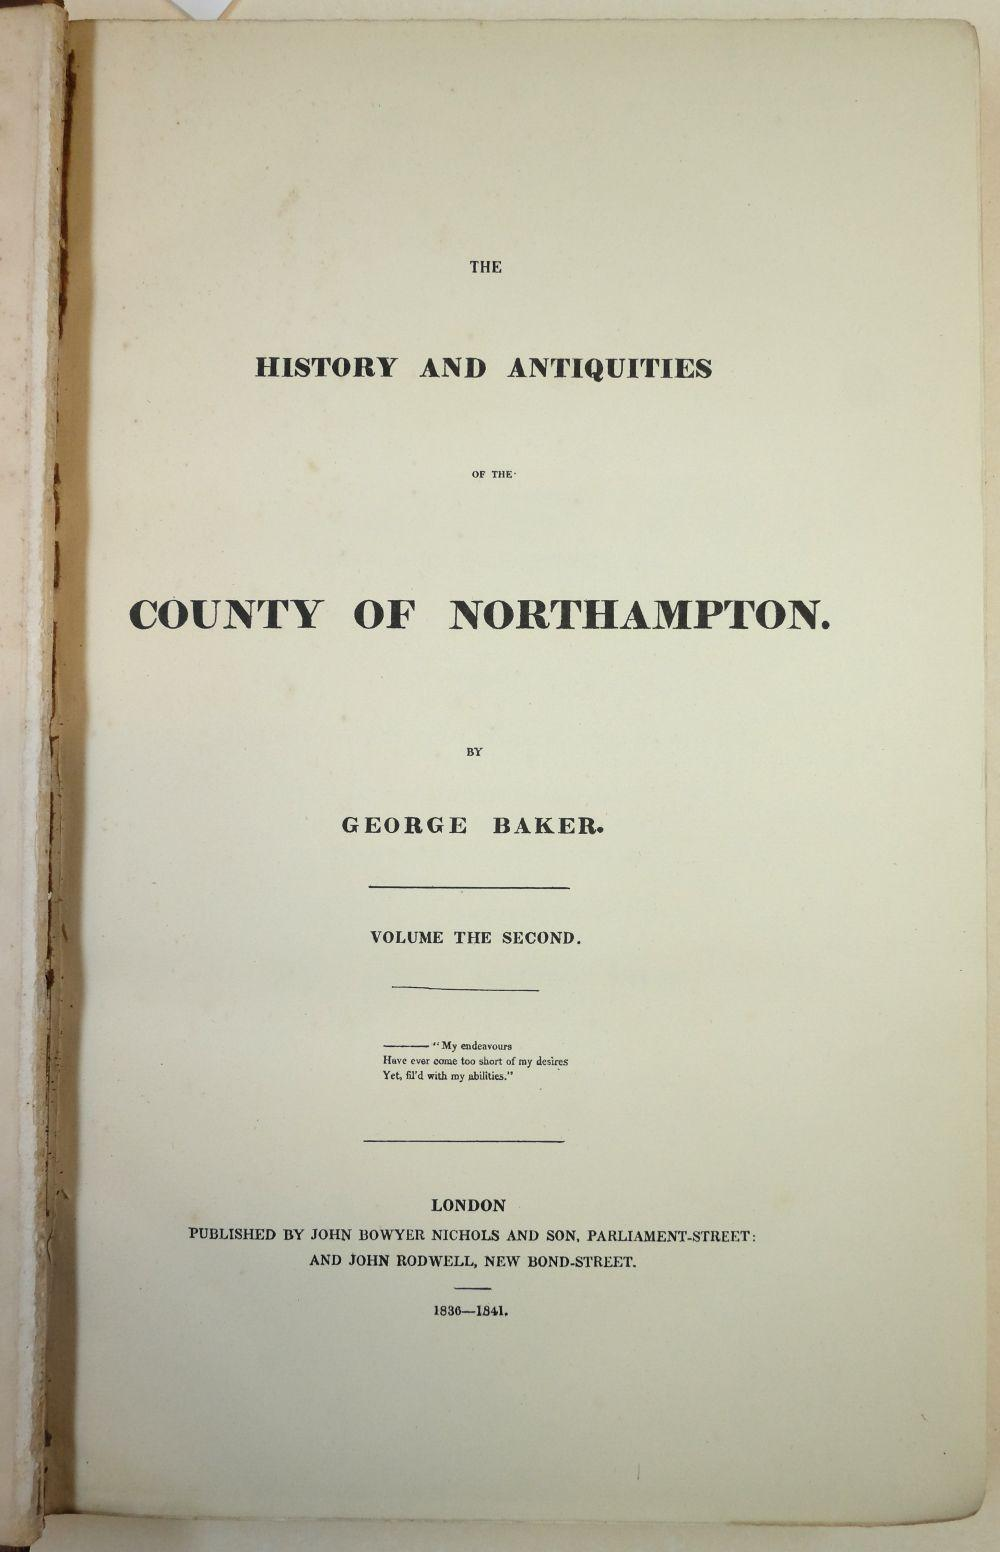 Baker (George). The History and Antiquities of the County of Northampton, 1822-1841